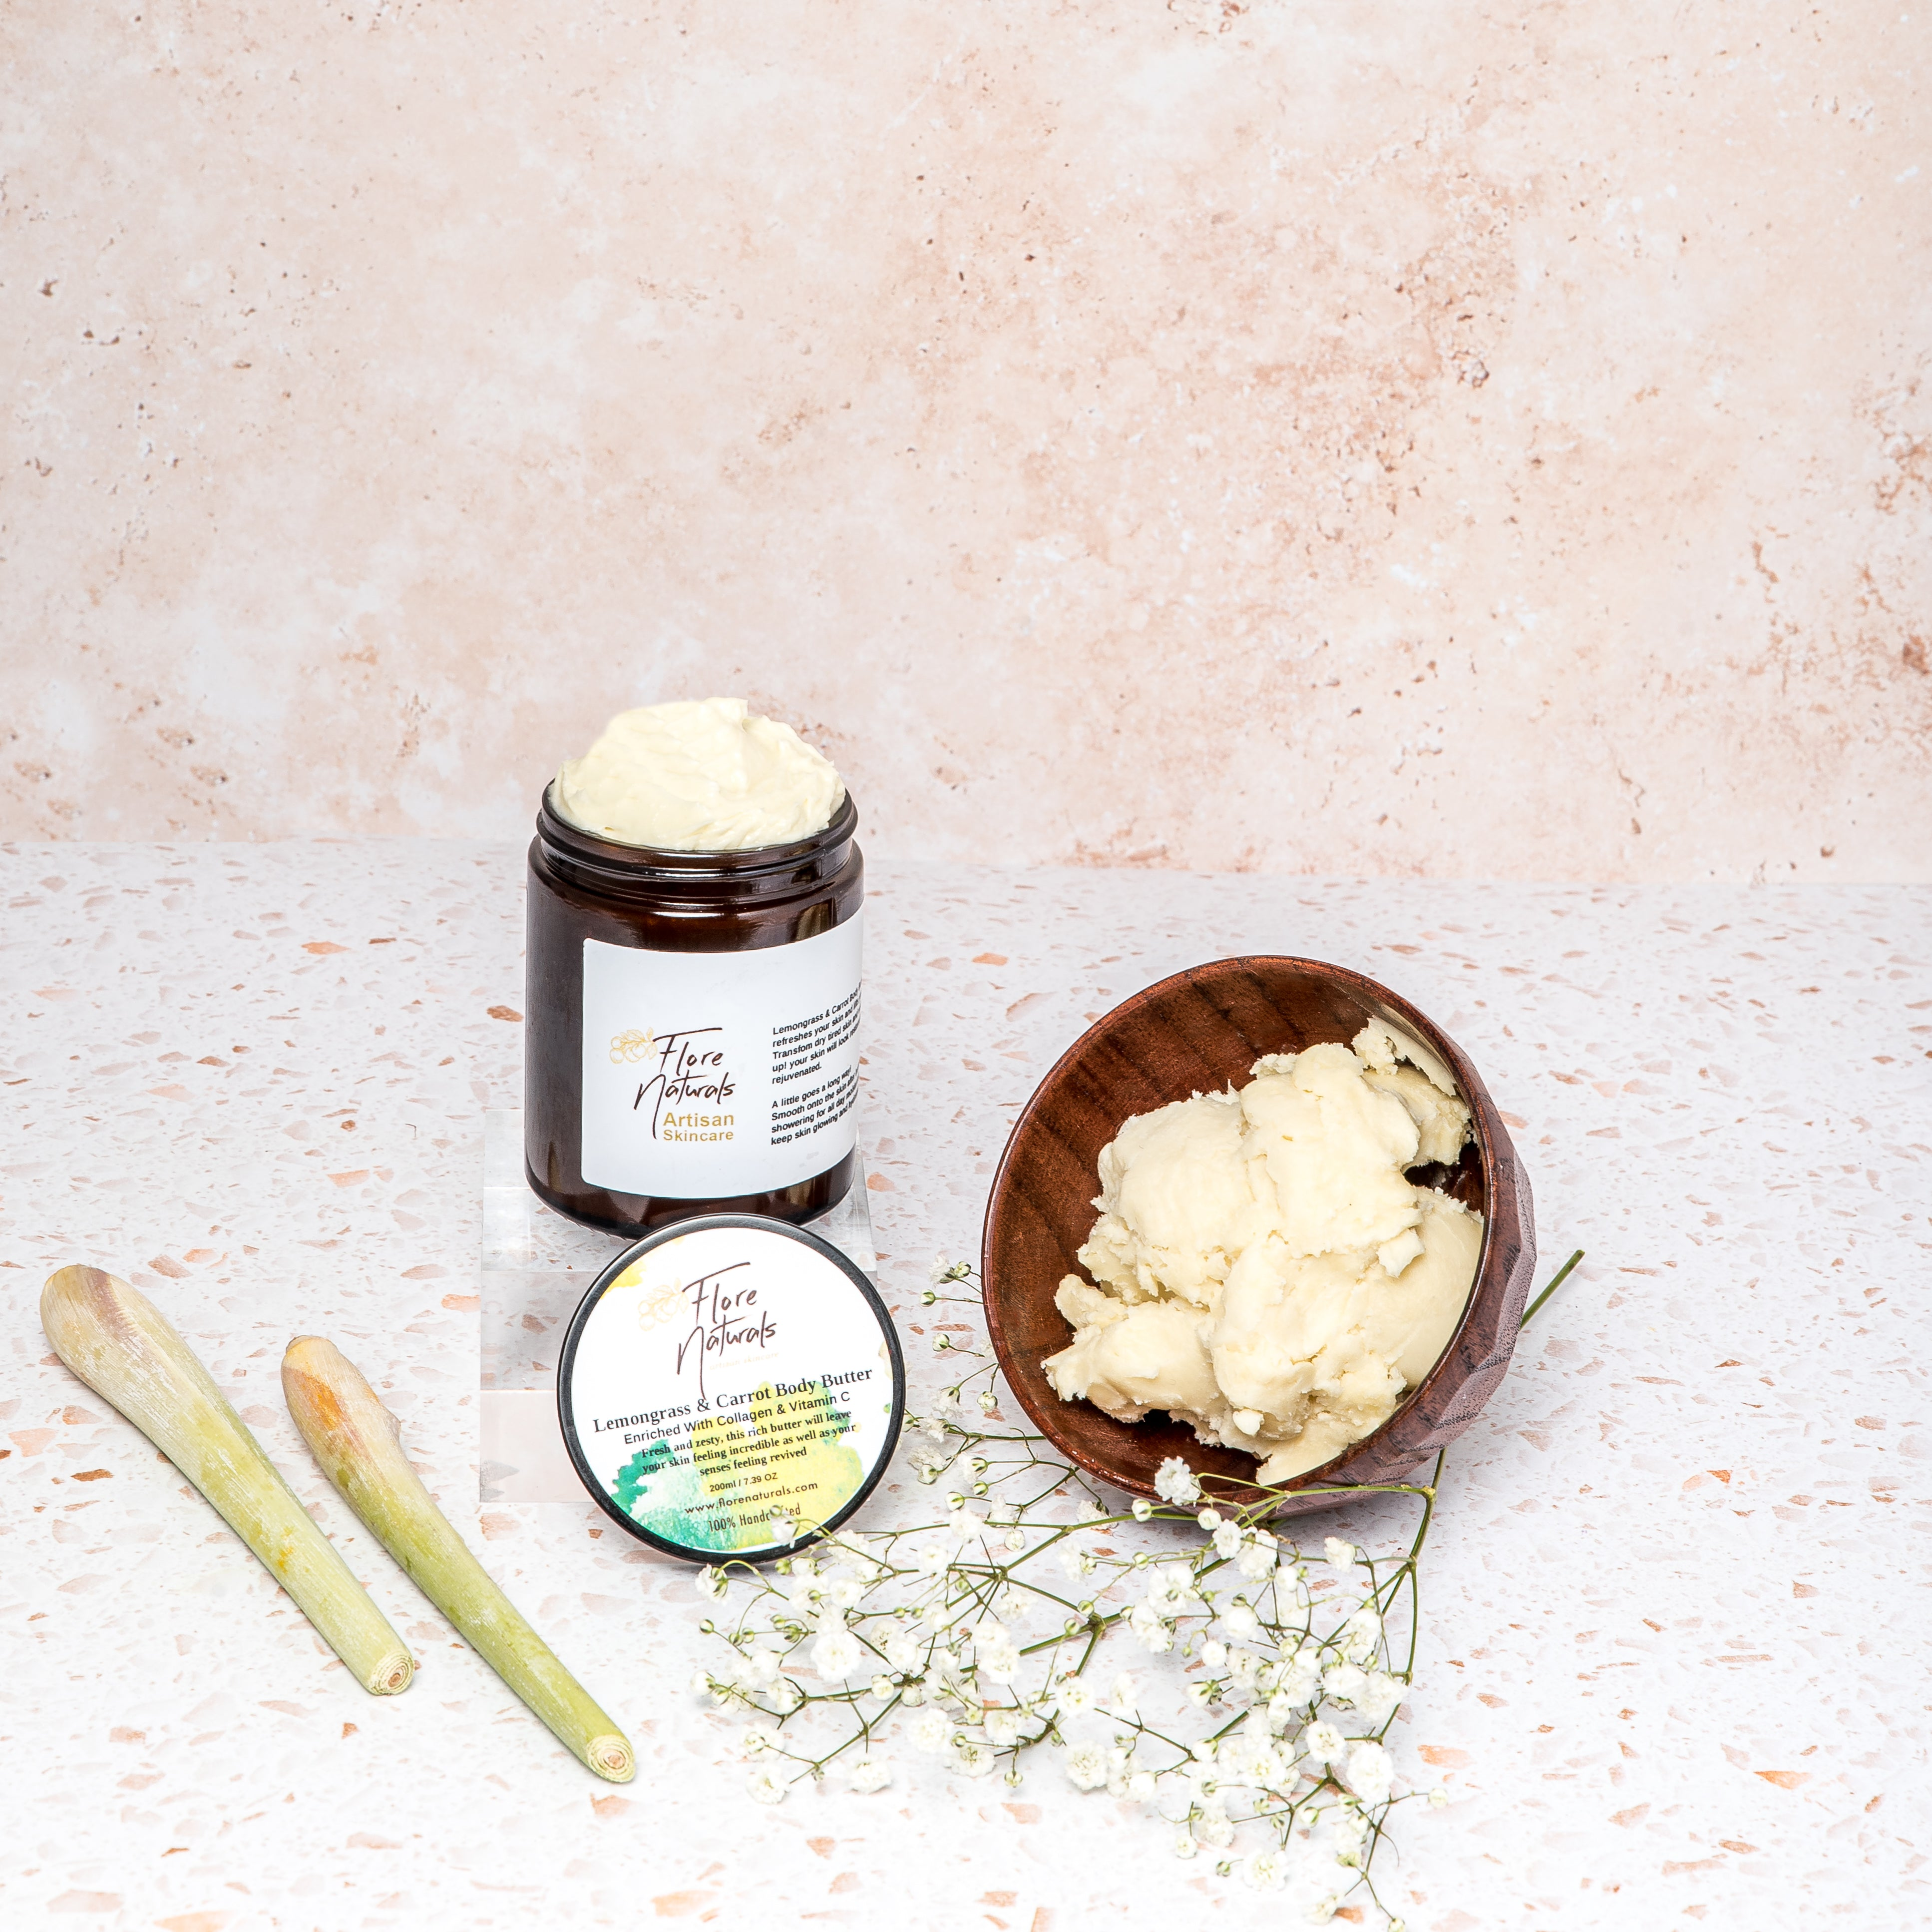 Lemongrass & Carrot Body Butter - Collagen with Vitamin C